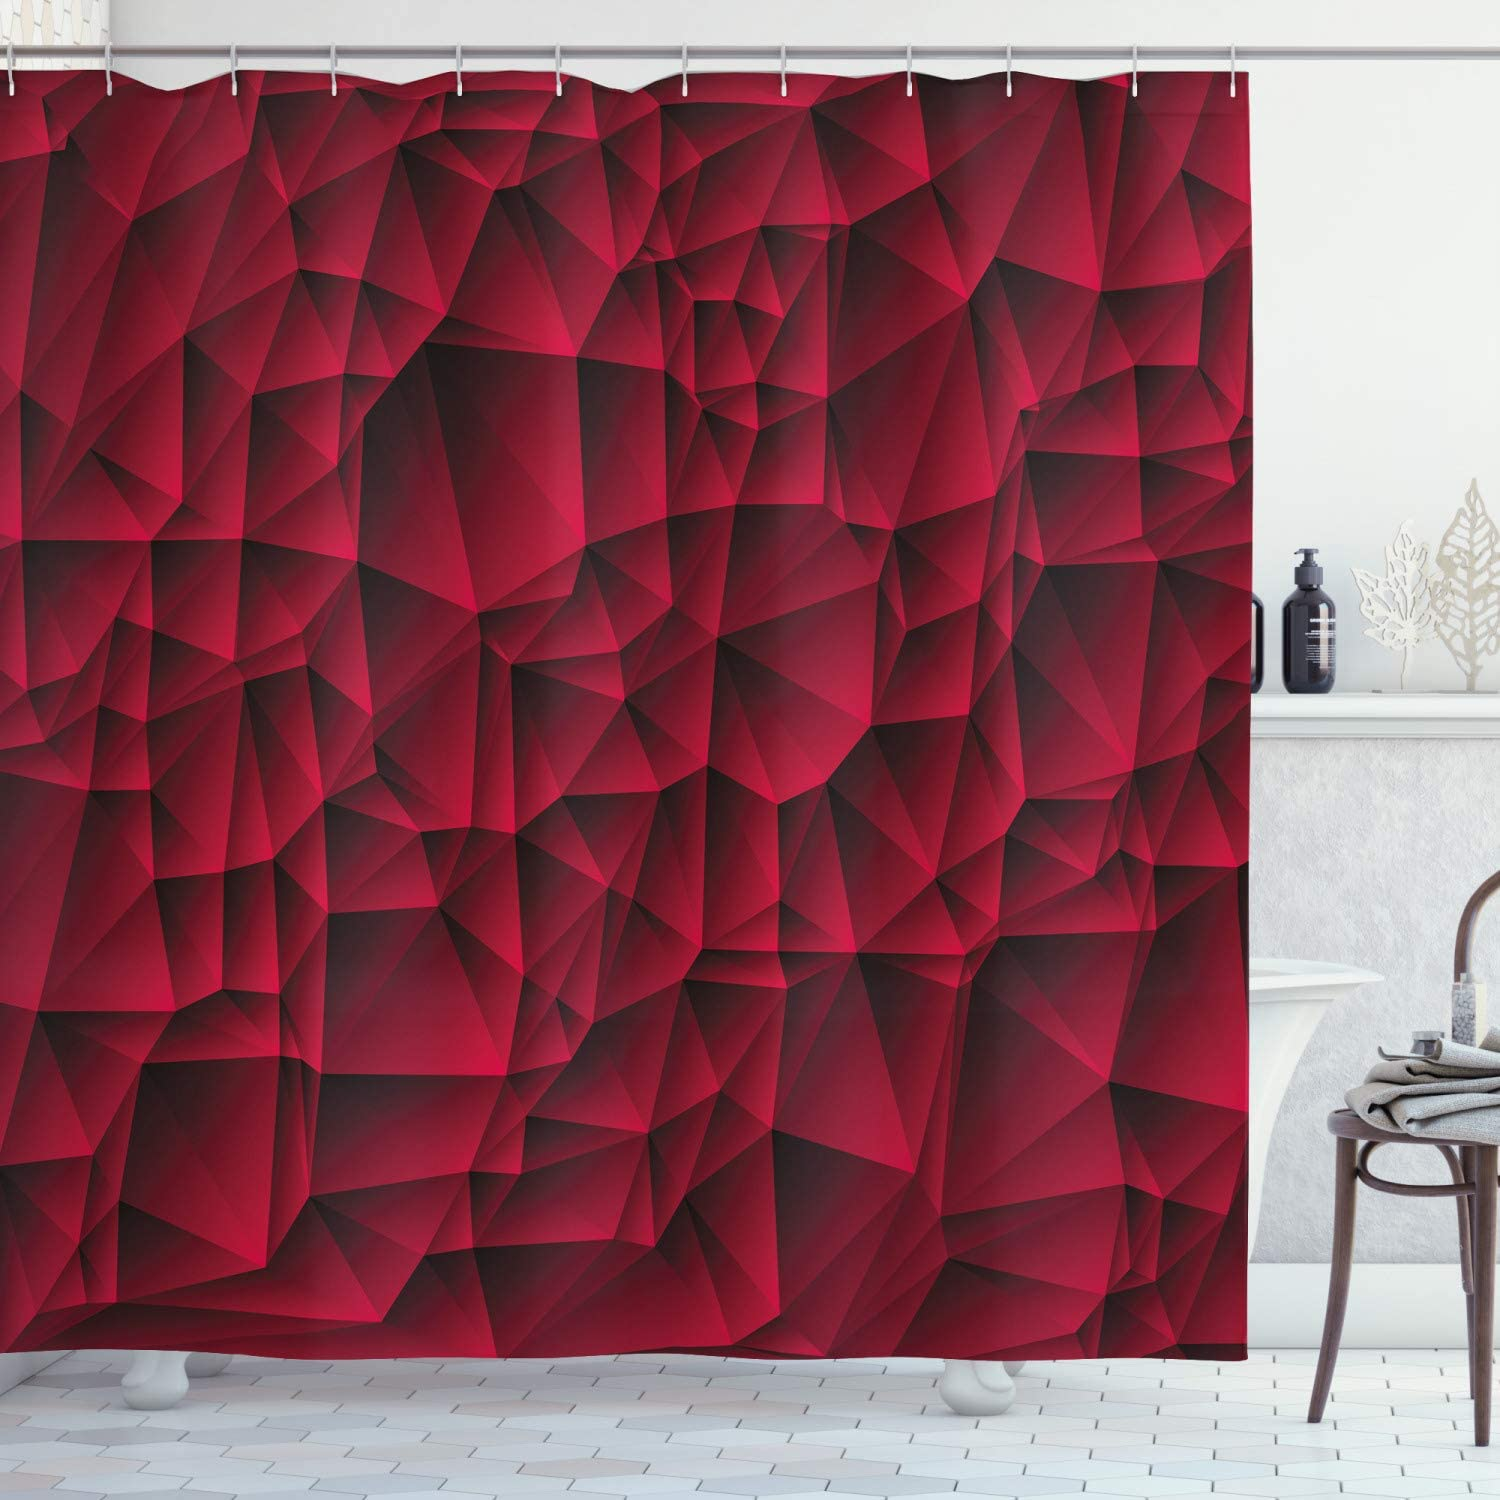 Ambesonne Maroon Shower Curtain, Modern Geometric and Contemporary Art Wave Like Shapes with The Abstract Backdrop of an Image Print Art, Cloth Fabric Bathroom Decor Set with Hooks, 70